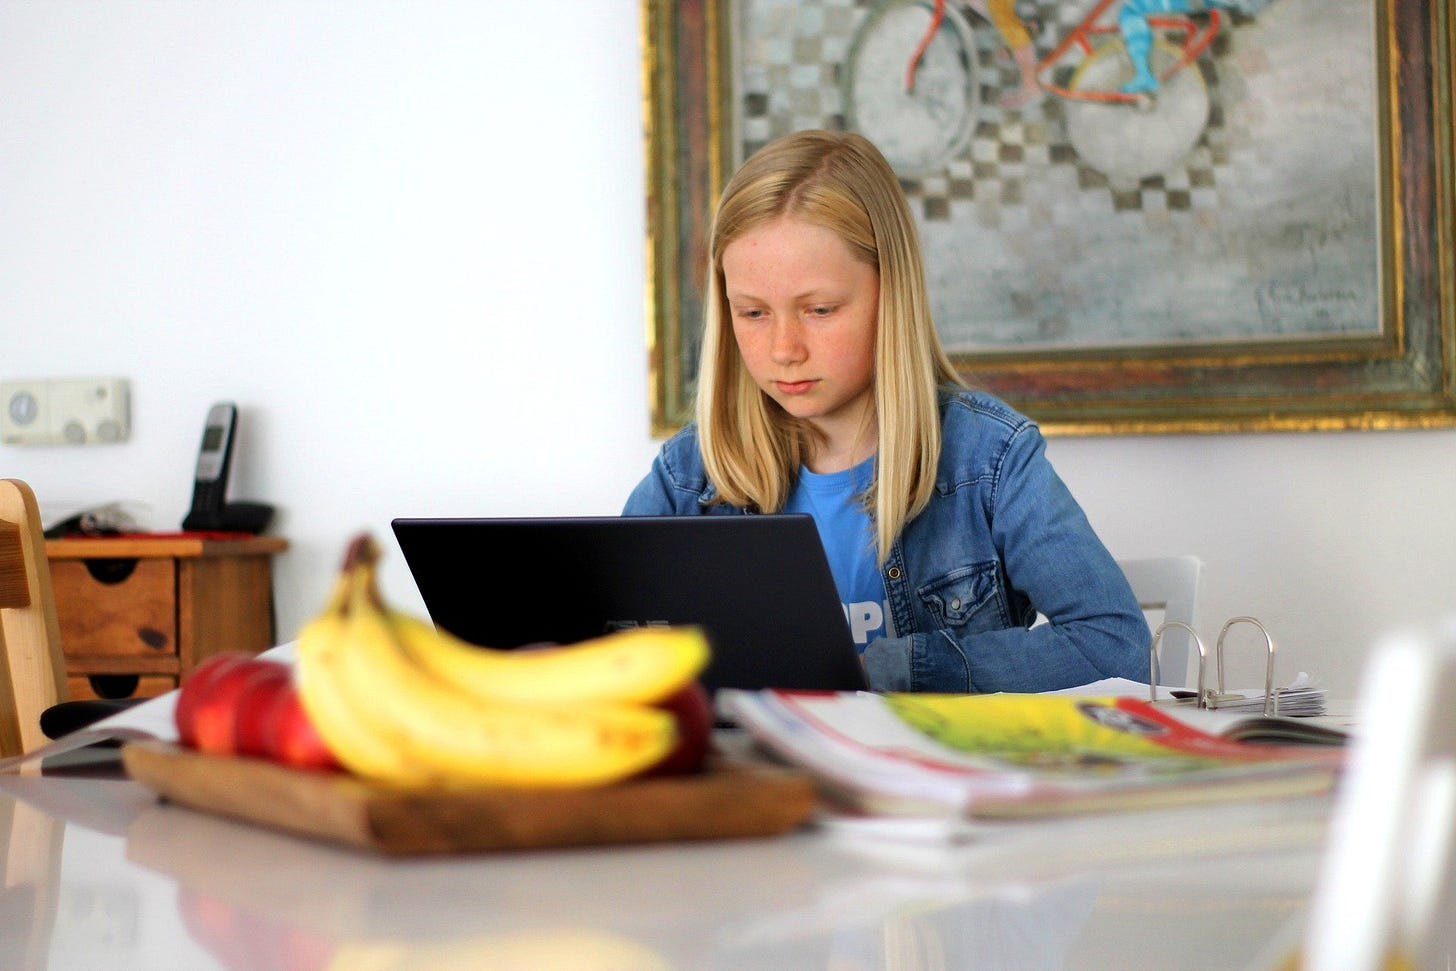 A young girl during homeschooling